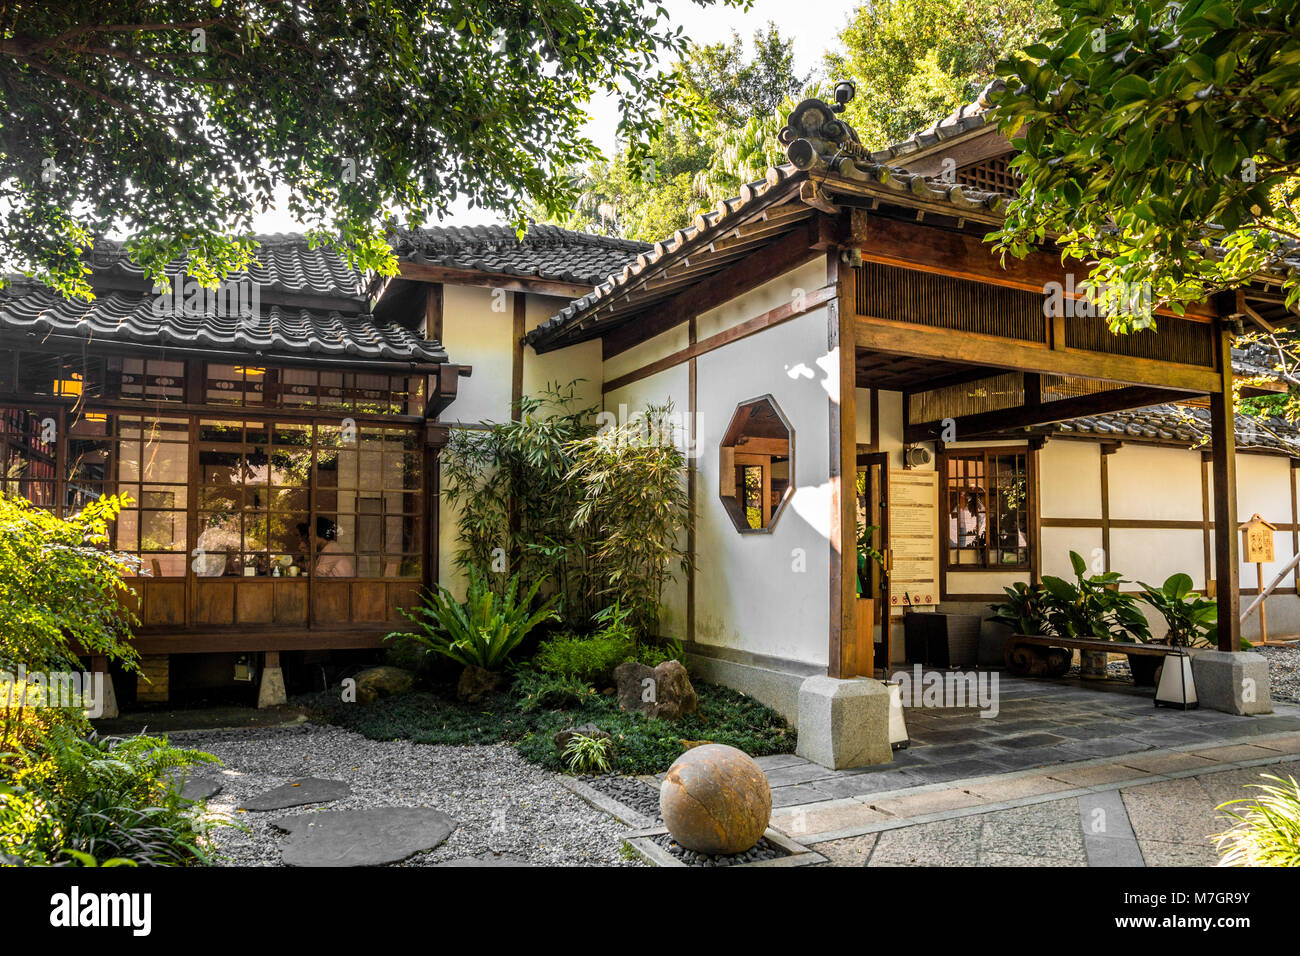 This Japanese Style Building Was Built In 1921 And Was A Famous Hot Spring  Hotel During The Japanese Rule. Today It Is The Beitou Museum.